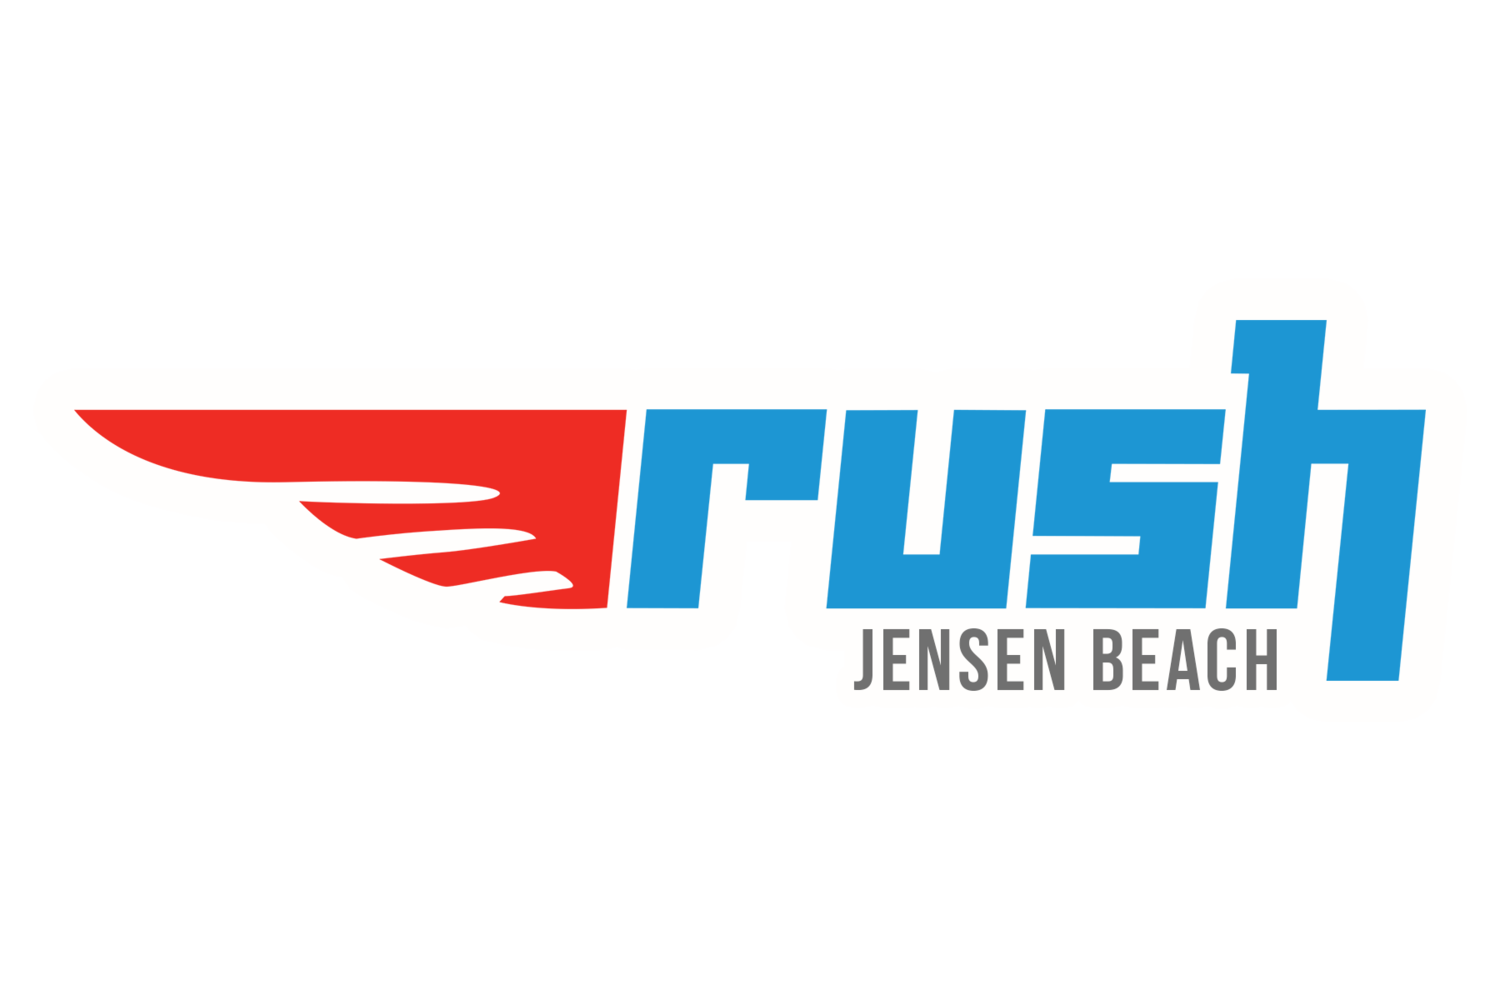 Rush Jensen Beach